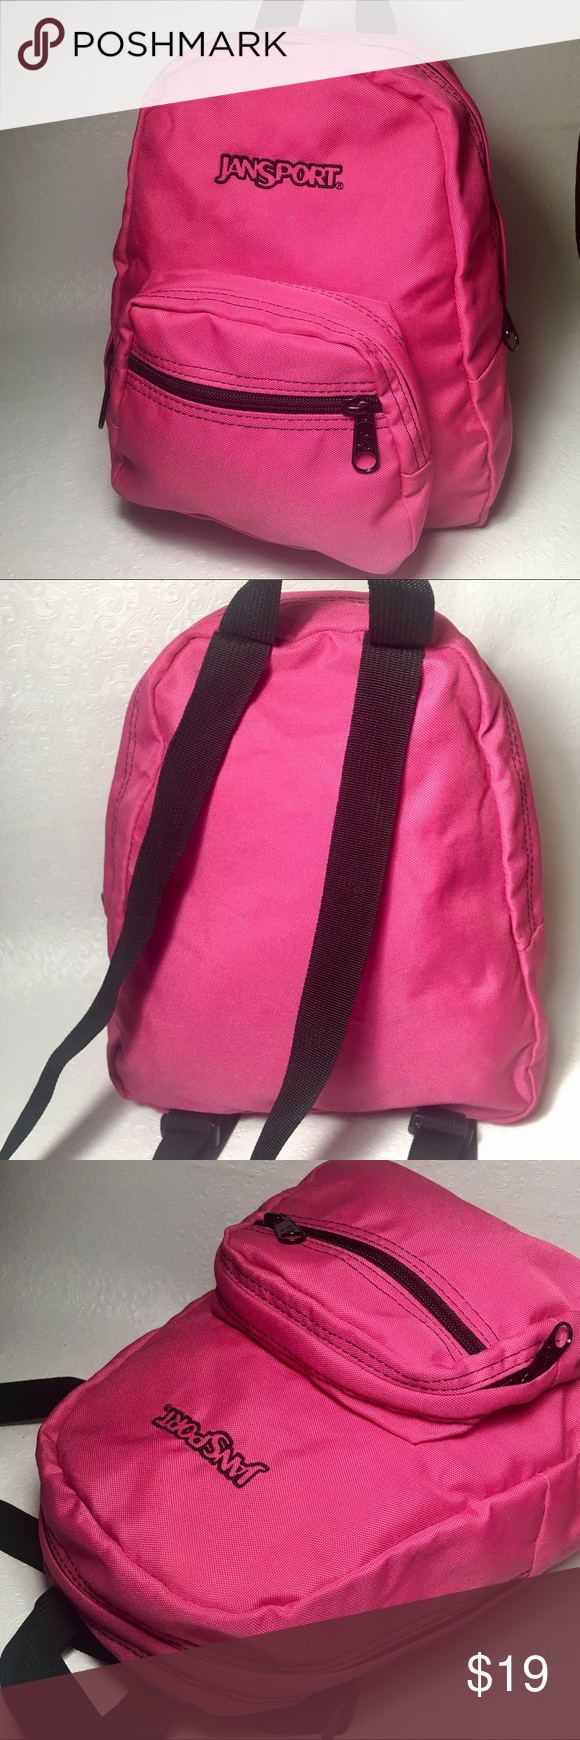 "Jansport hot pink 'half-pint' backpack Front utility pocket for easy access 600-denier construction for lasting durability Large main compartment Adjustable shoulder straps Key clip 12.3""H x 10""W x 6.5""D Polyester, zipper closure. Jansport Bags Backpacks"